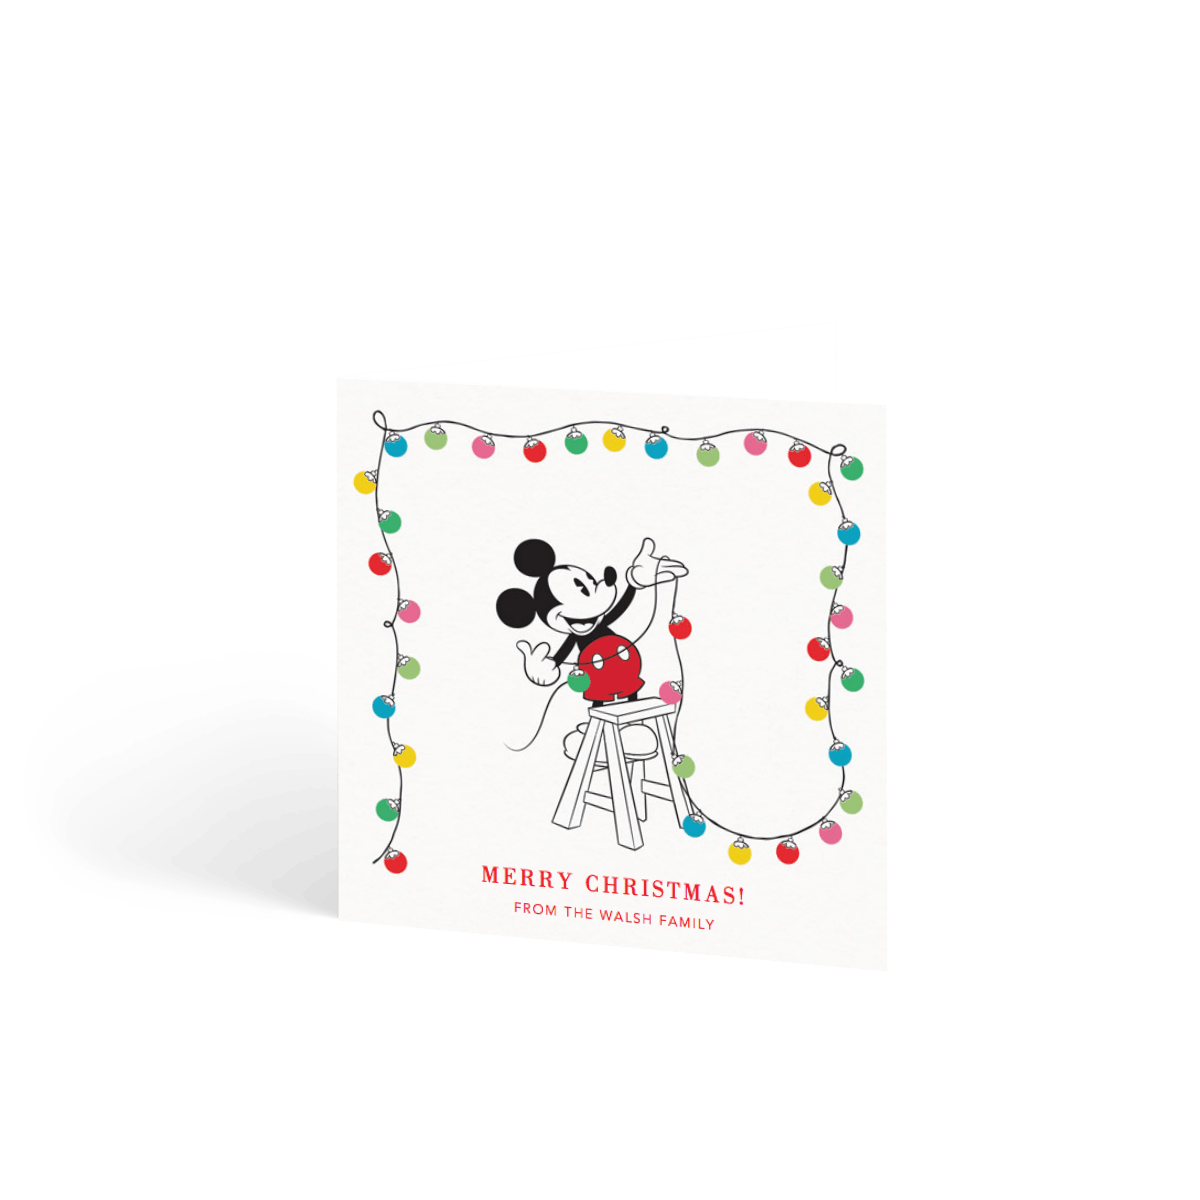 Https%3a%2f%2fwww.papier.com%2fproduct image%2f41749%2f16%2fchristmas mickey mouse 10637 front 1532018280.png?ixlib=rb 1.1